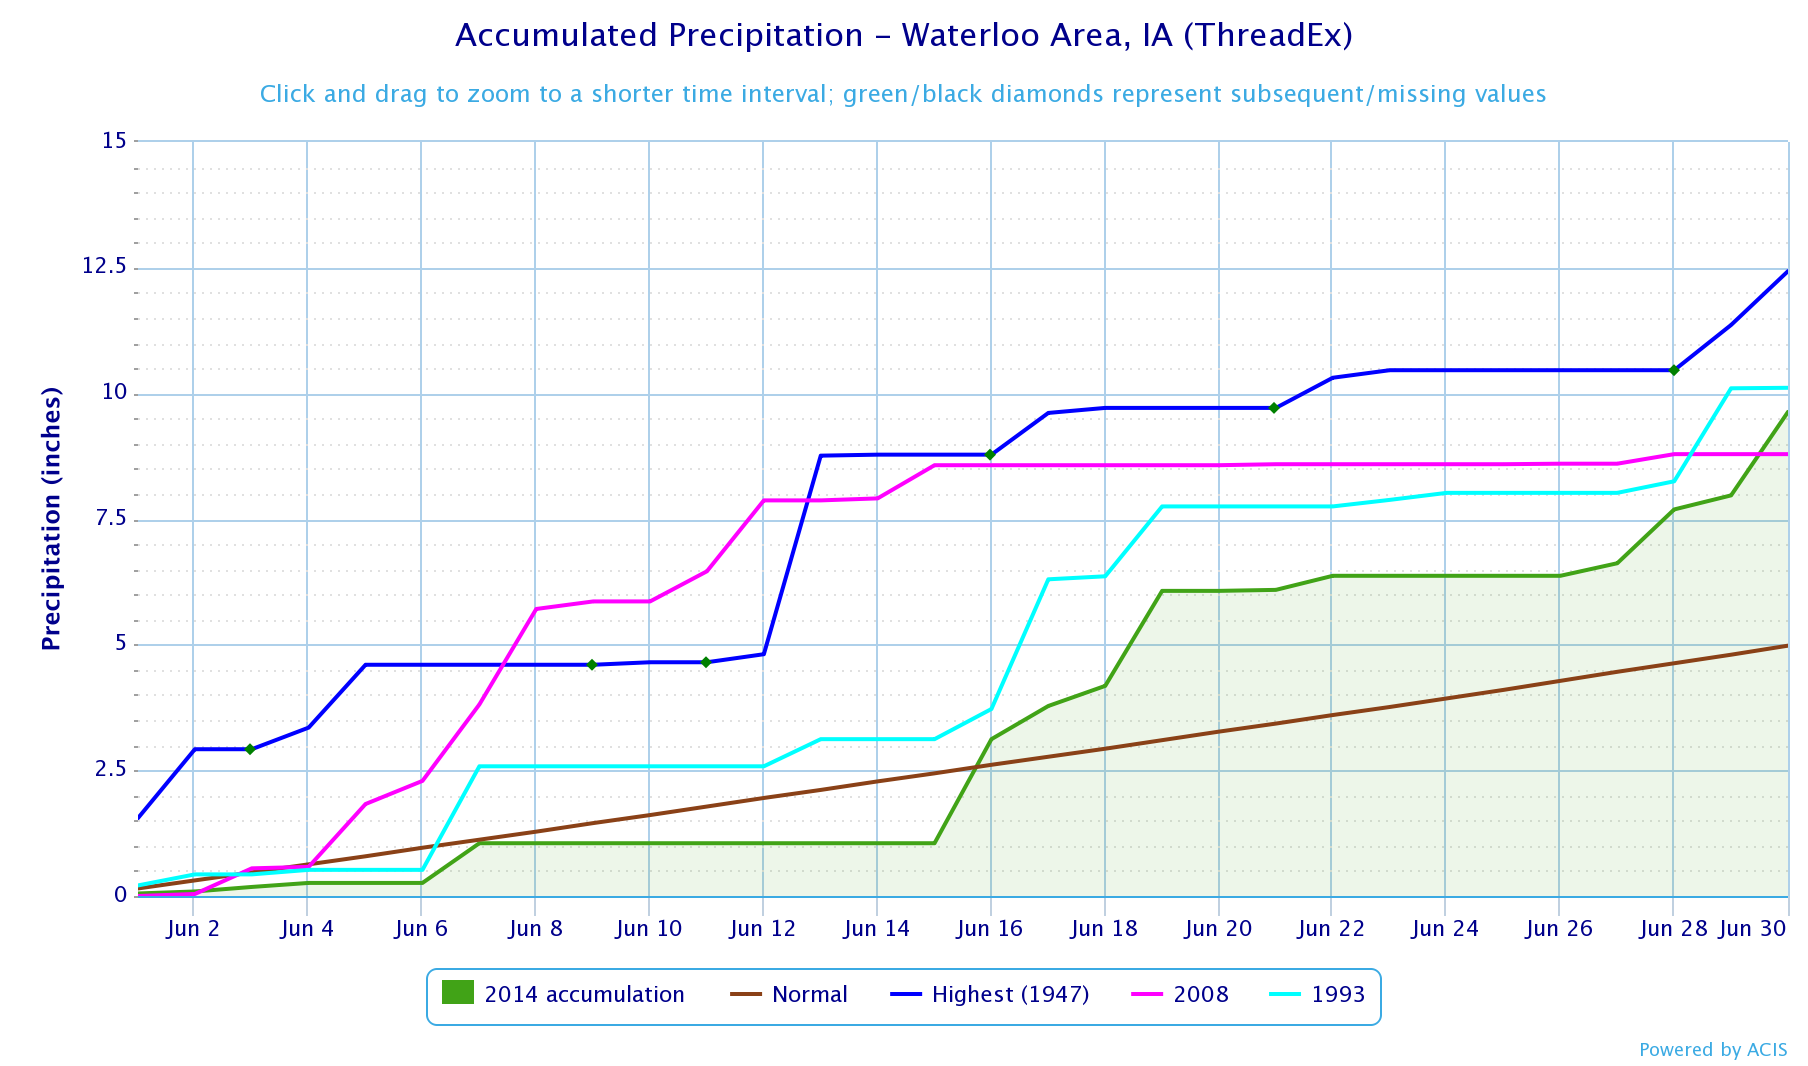 Figure 3: Waterloo Accumulated Precipitation for June 2014 as well as June 1947, 1993, and 2008.